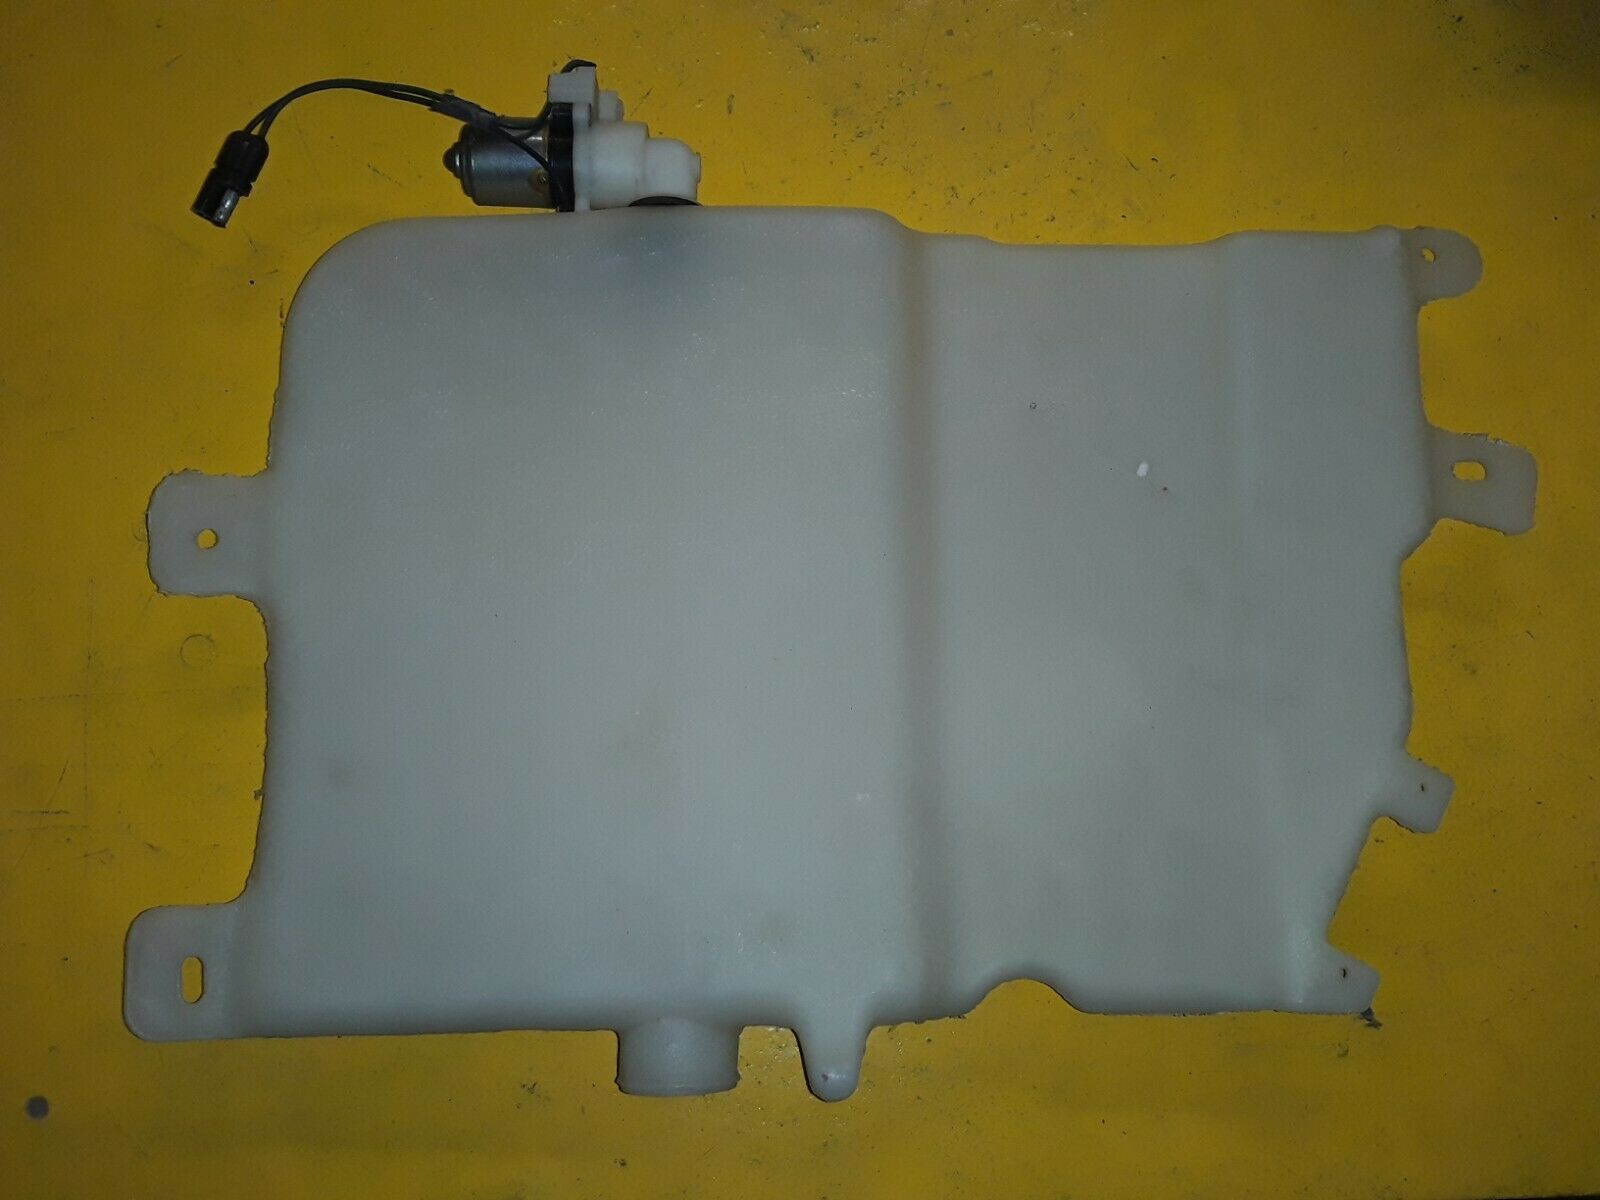 NOS OEM Ford 1971-74 Galaxie LTD STATION WAGON Washer Reservoir D1AZ-17618-A Does Not Apply